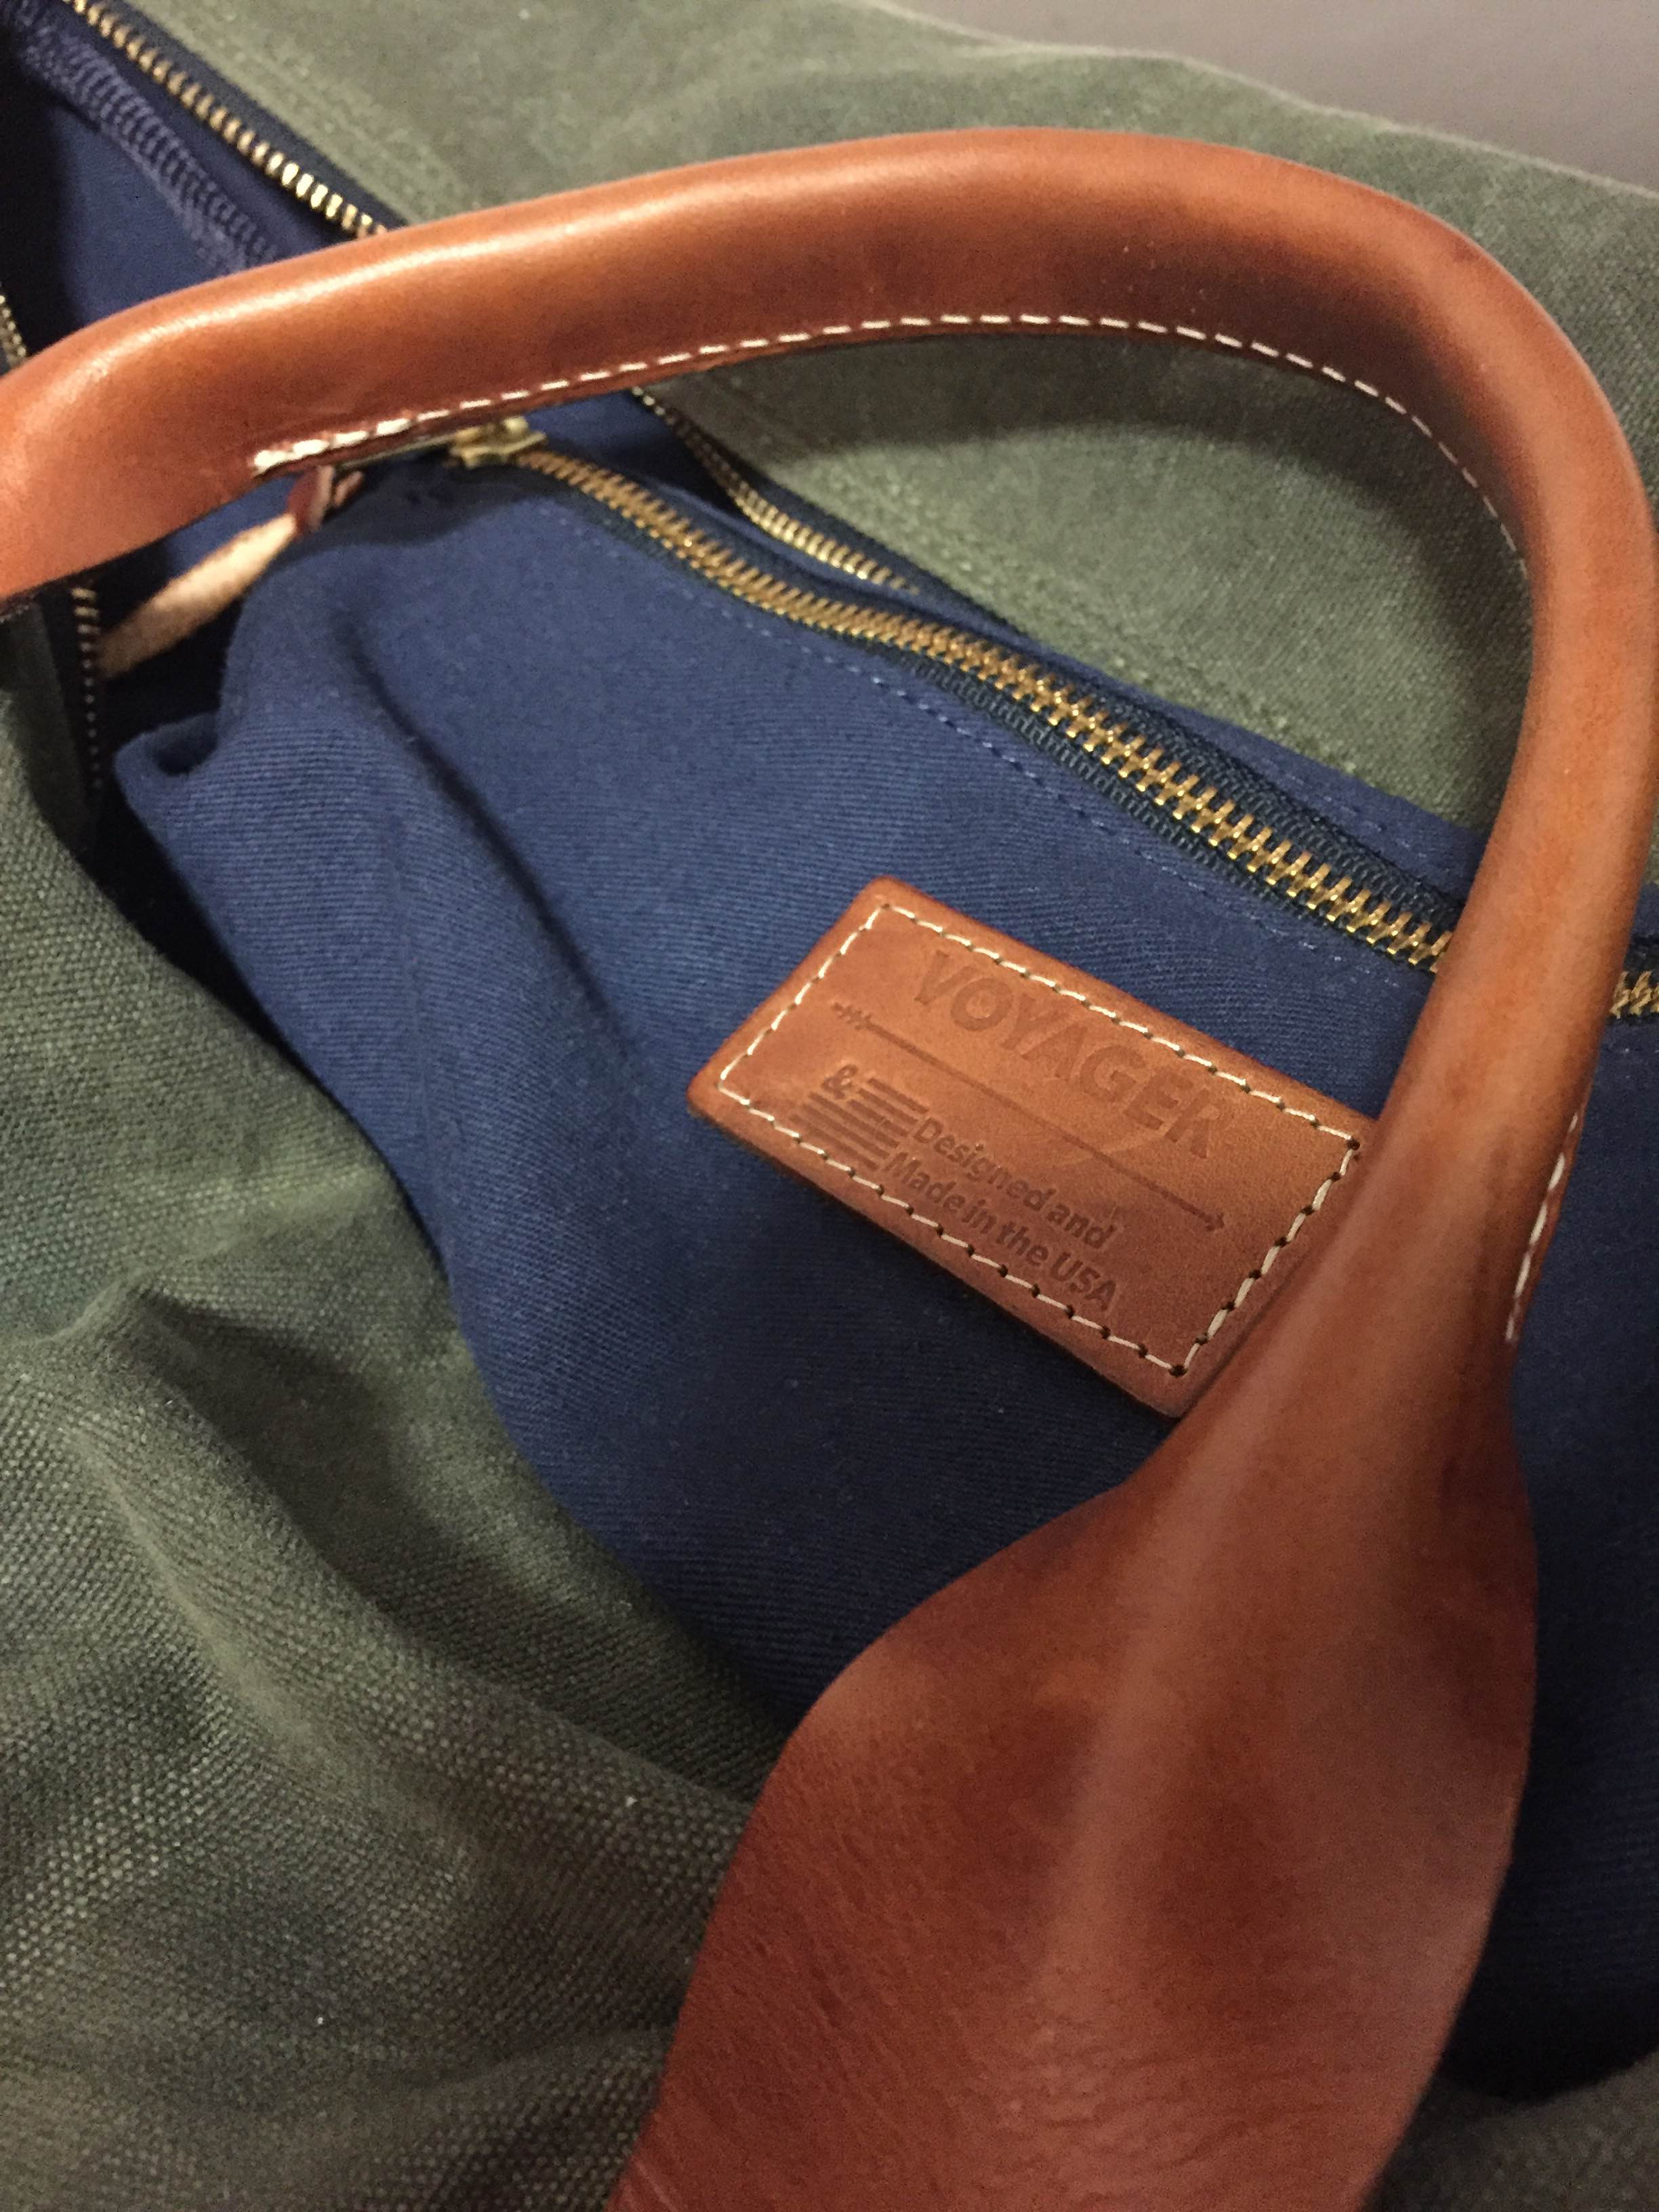 ccdee8449c3 A navy twill interior and army green waxed canvas are complemented by  leather handles from Wickett